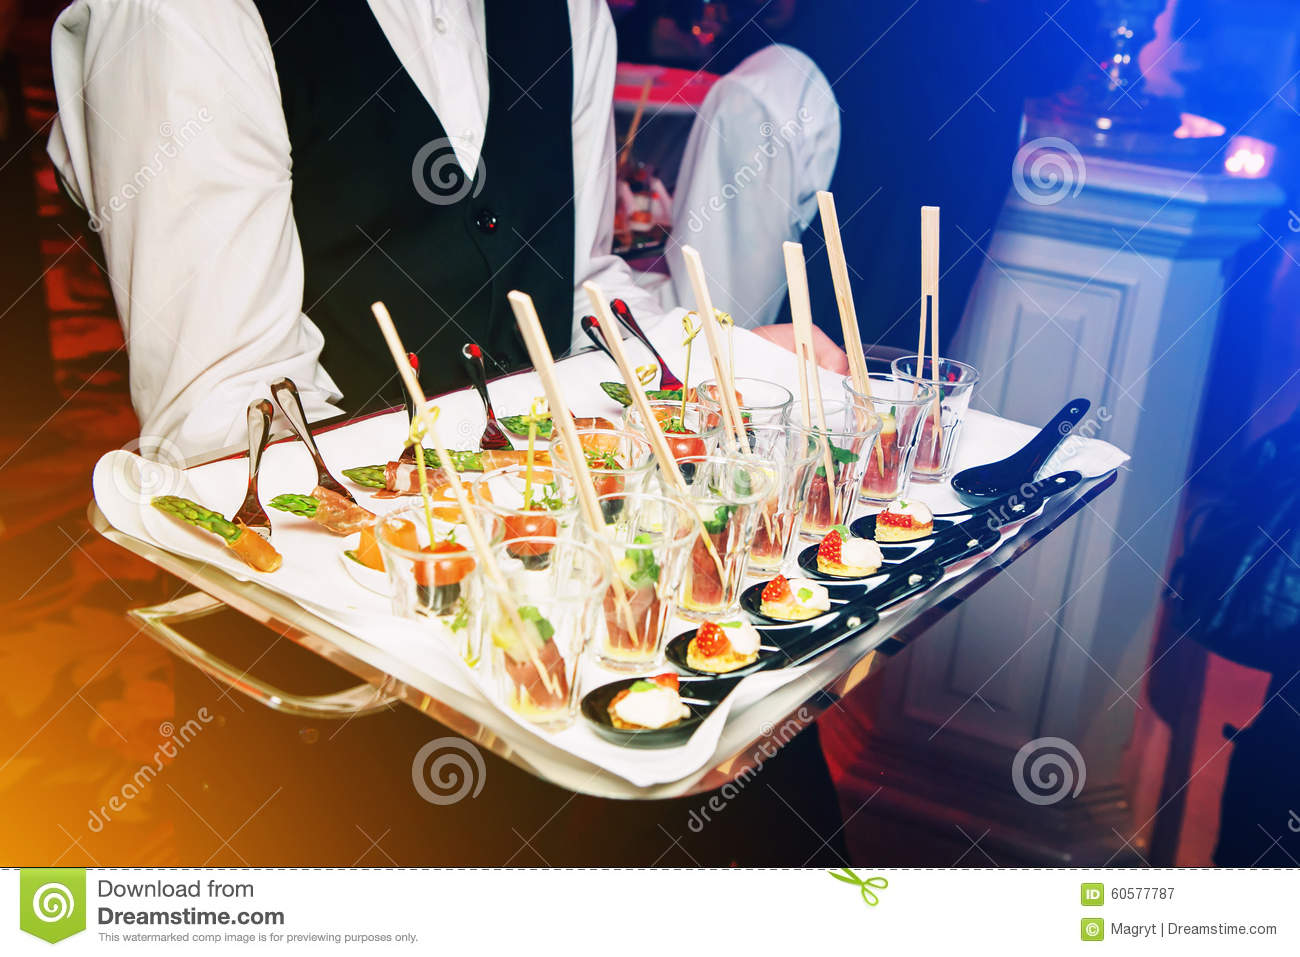 Server holding a tray of appetizers at banquet